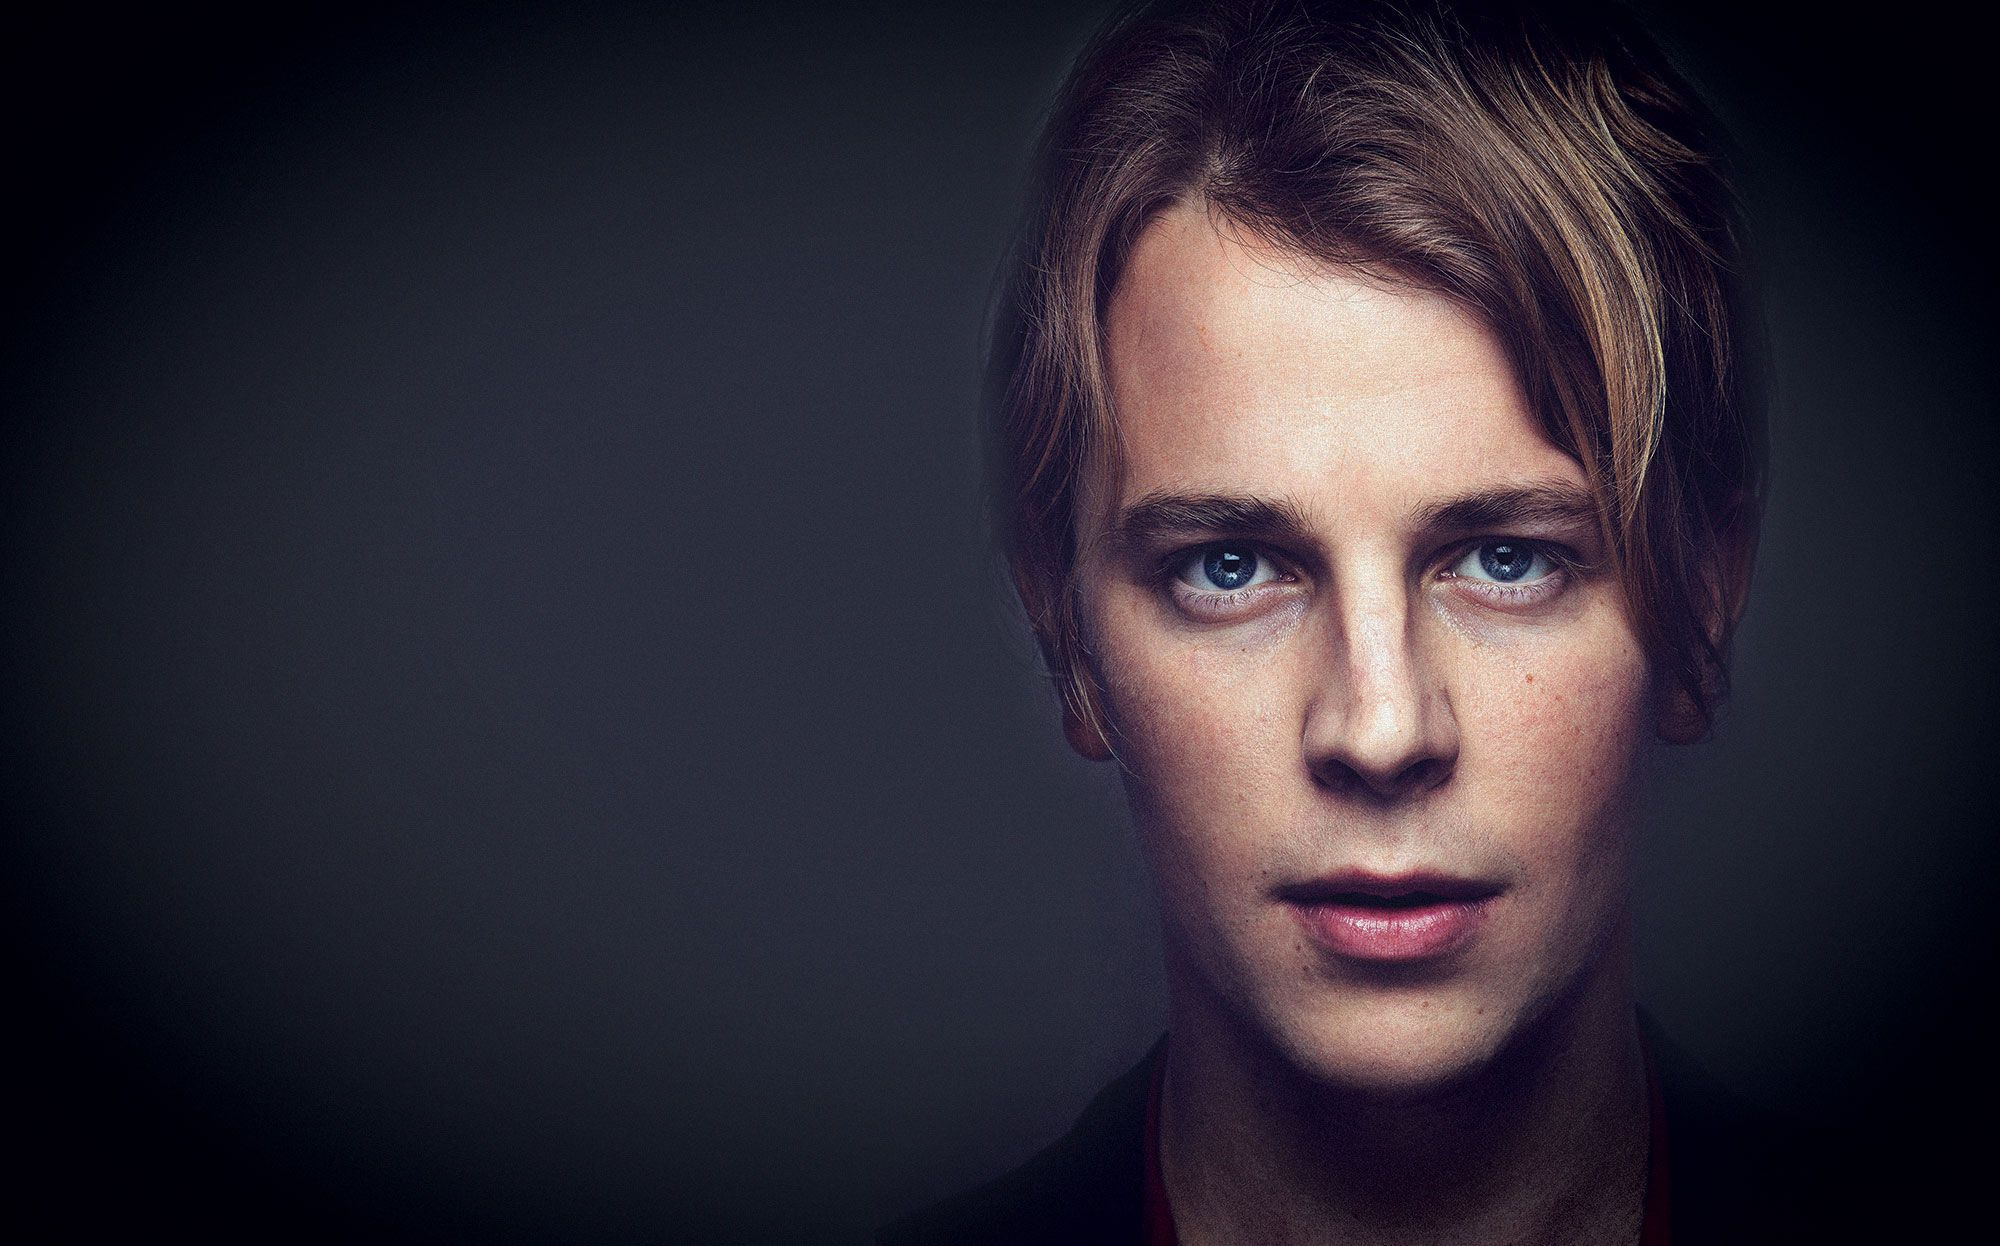 Tom Odell Hd Background